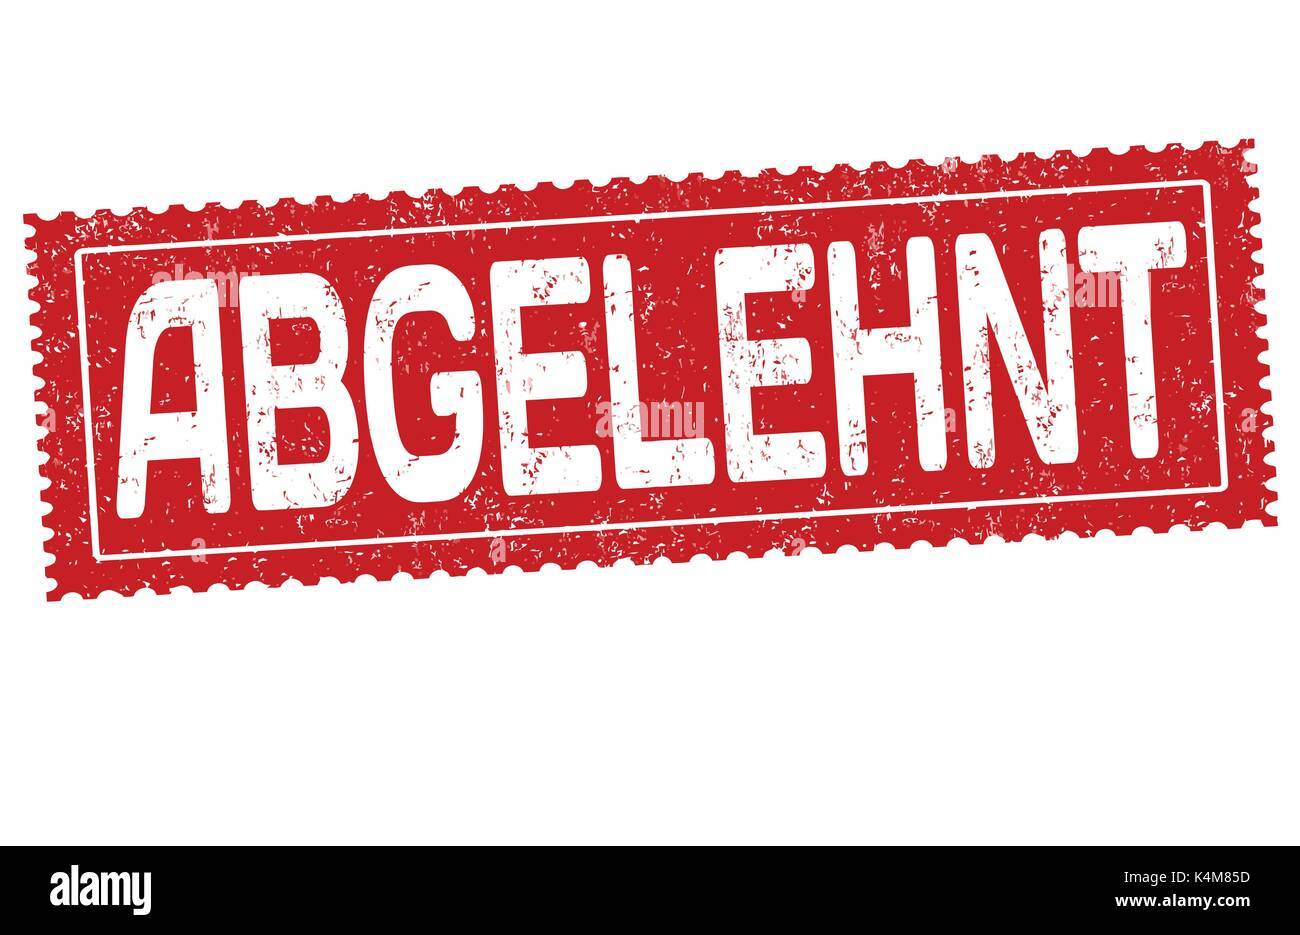 Abgelehnt (Rejected in german language) grunge rubber stamp on white background, vector illustration - Stock Image